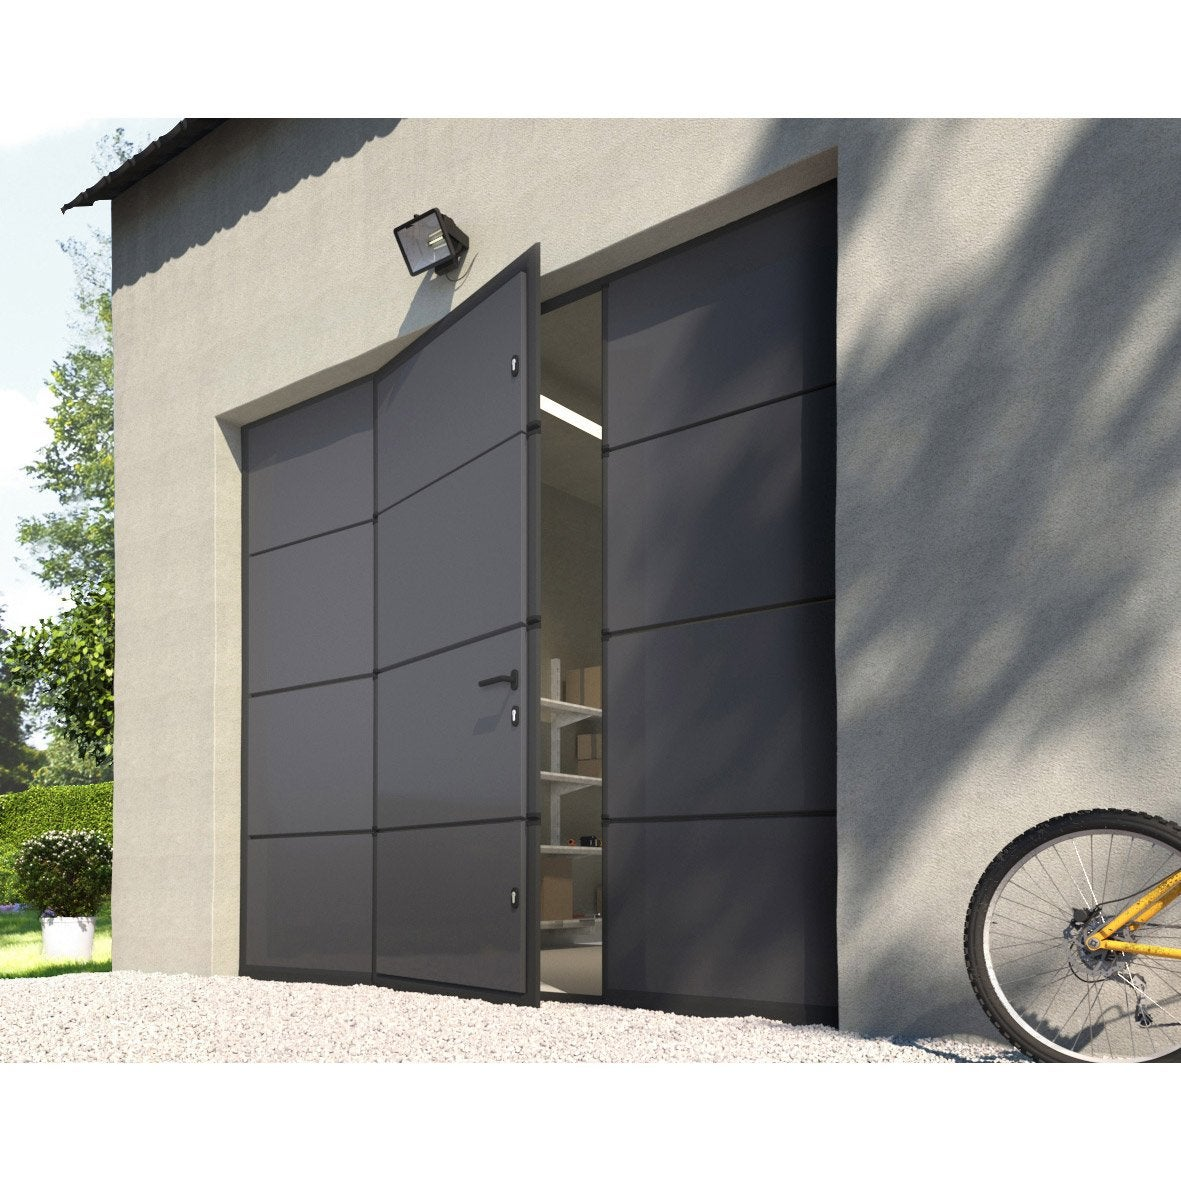 Porte de garage sectionnelle motoris e artens essentiel for Porte de garage pvc imitation bois